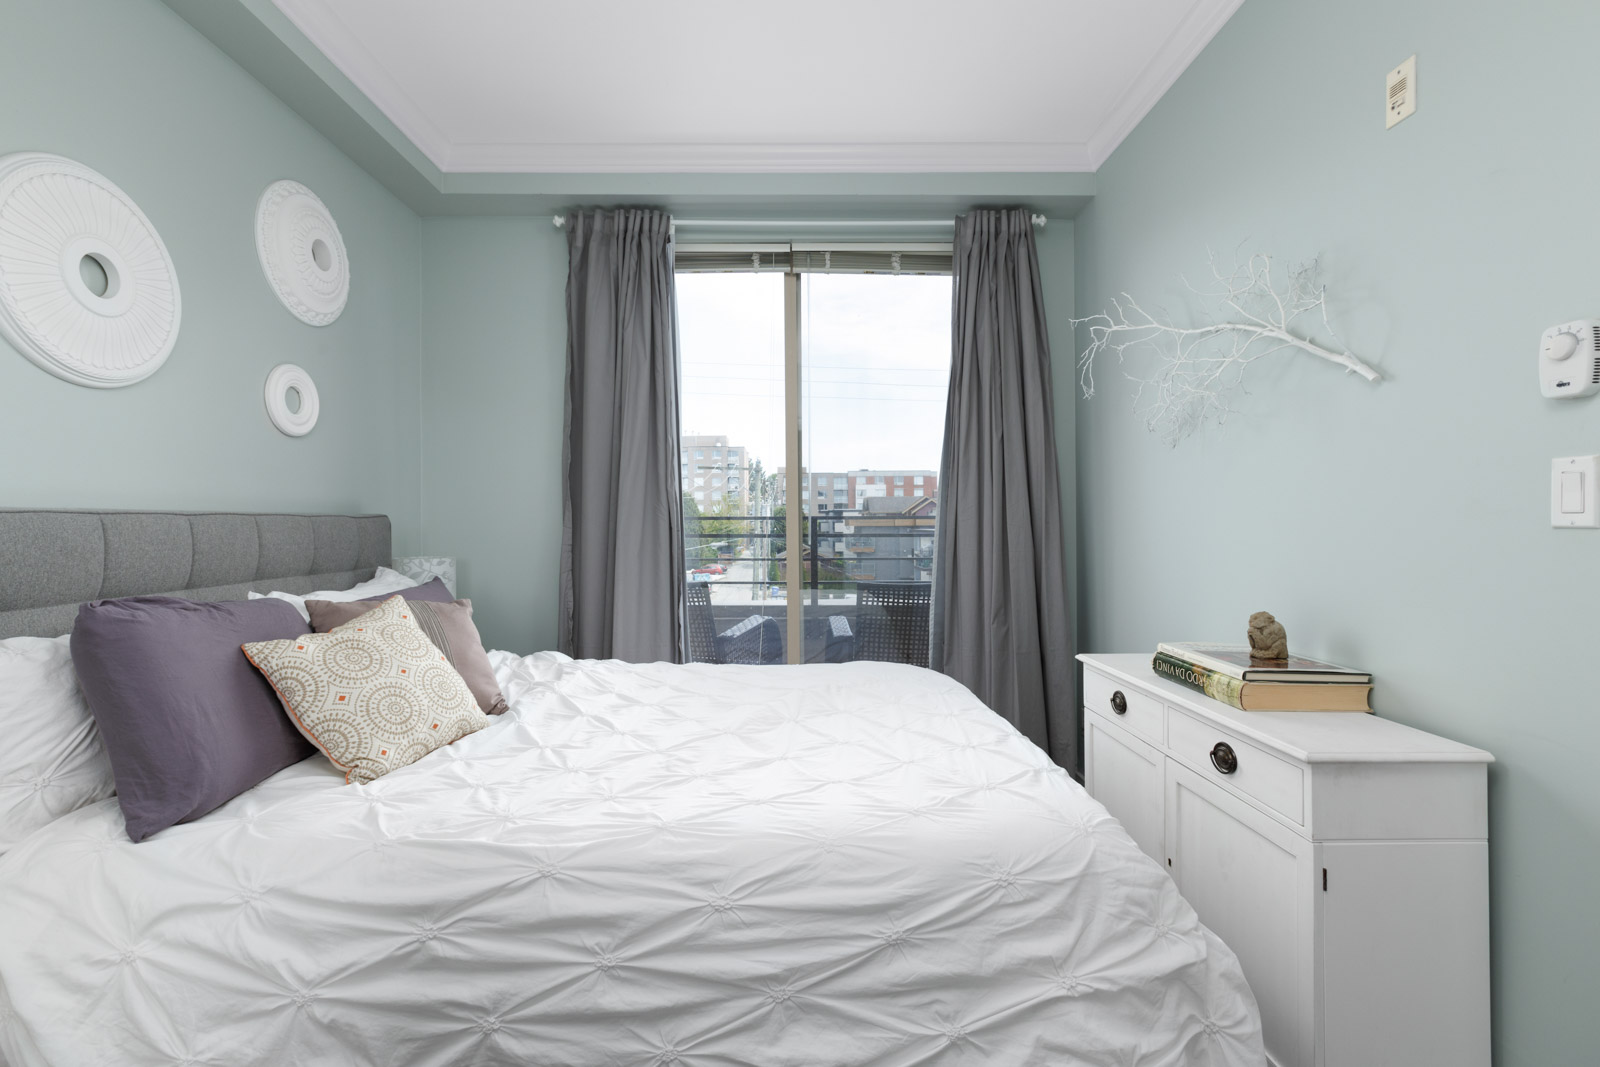 Spacious bedroom with floor-to-ceiling windows providing natural sunlight in a rental condo in East Vancouver offered by Birds Nest Properties